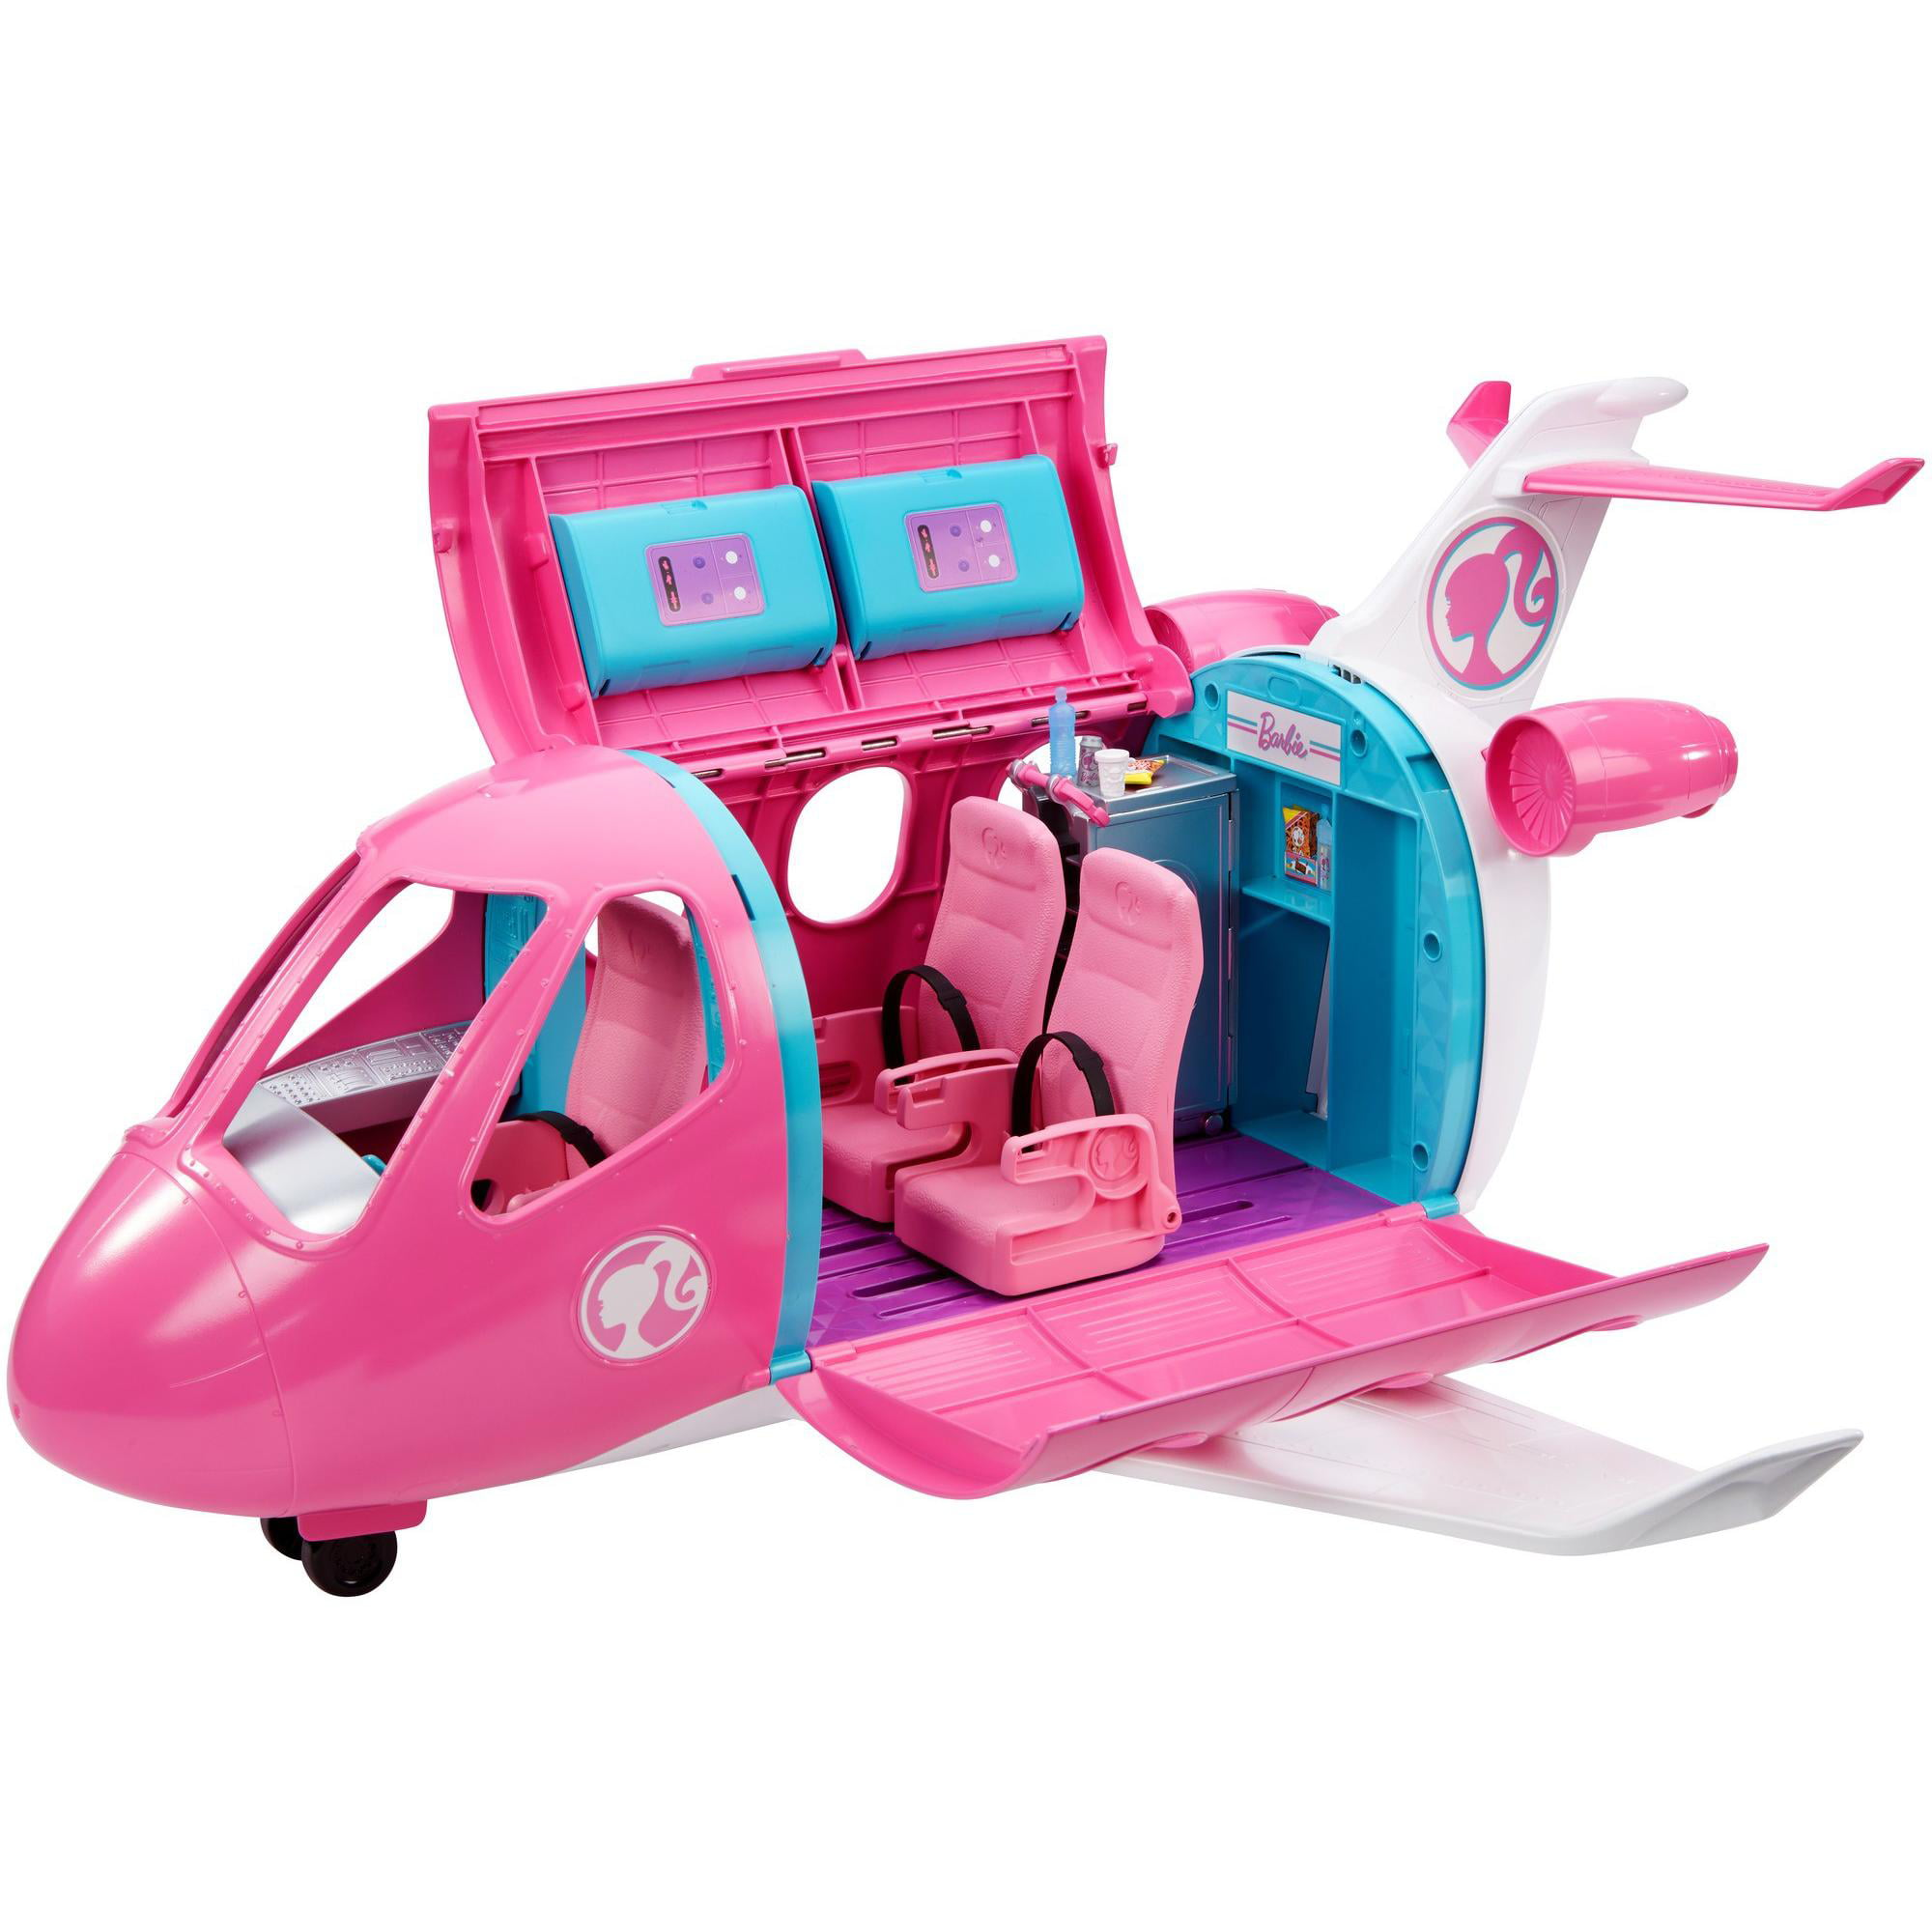 Barbie Estate Dreamplane Playset with 15+ Themed Accessories